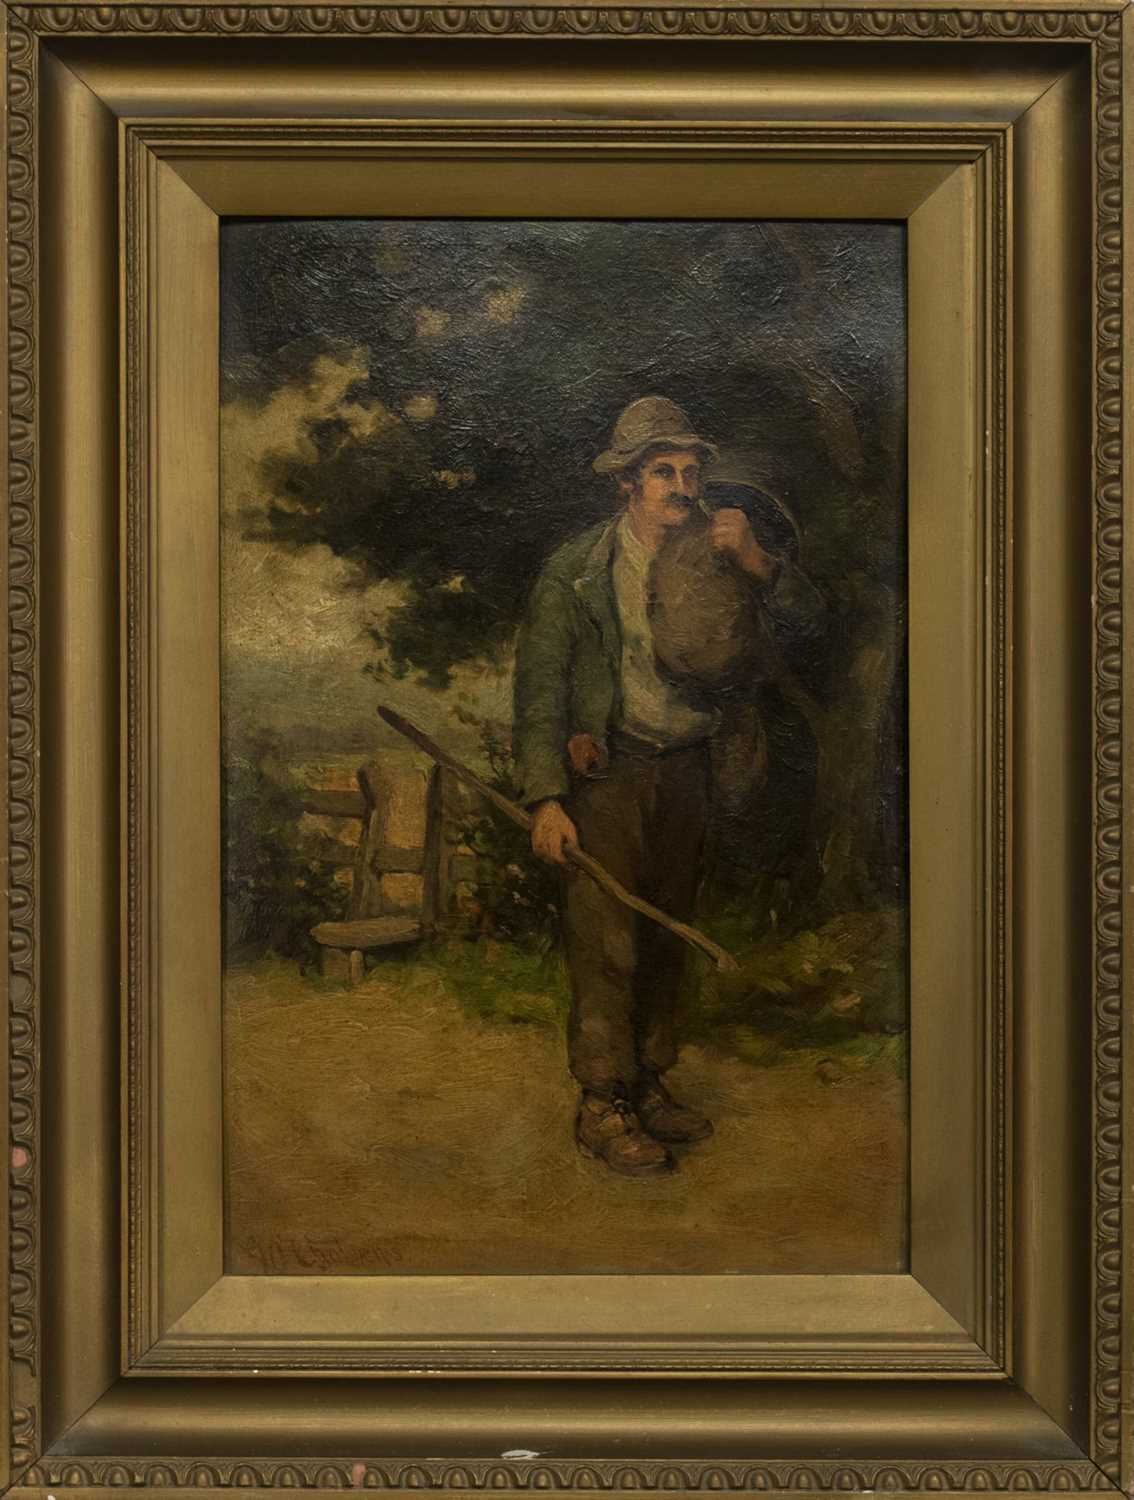 Lot 95 - A LONG DAY OF WORK, AN OIL BY GEORGE PAUL CHALMERS